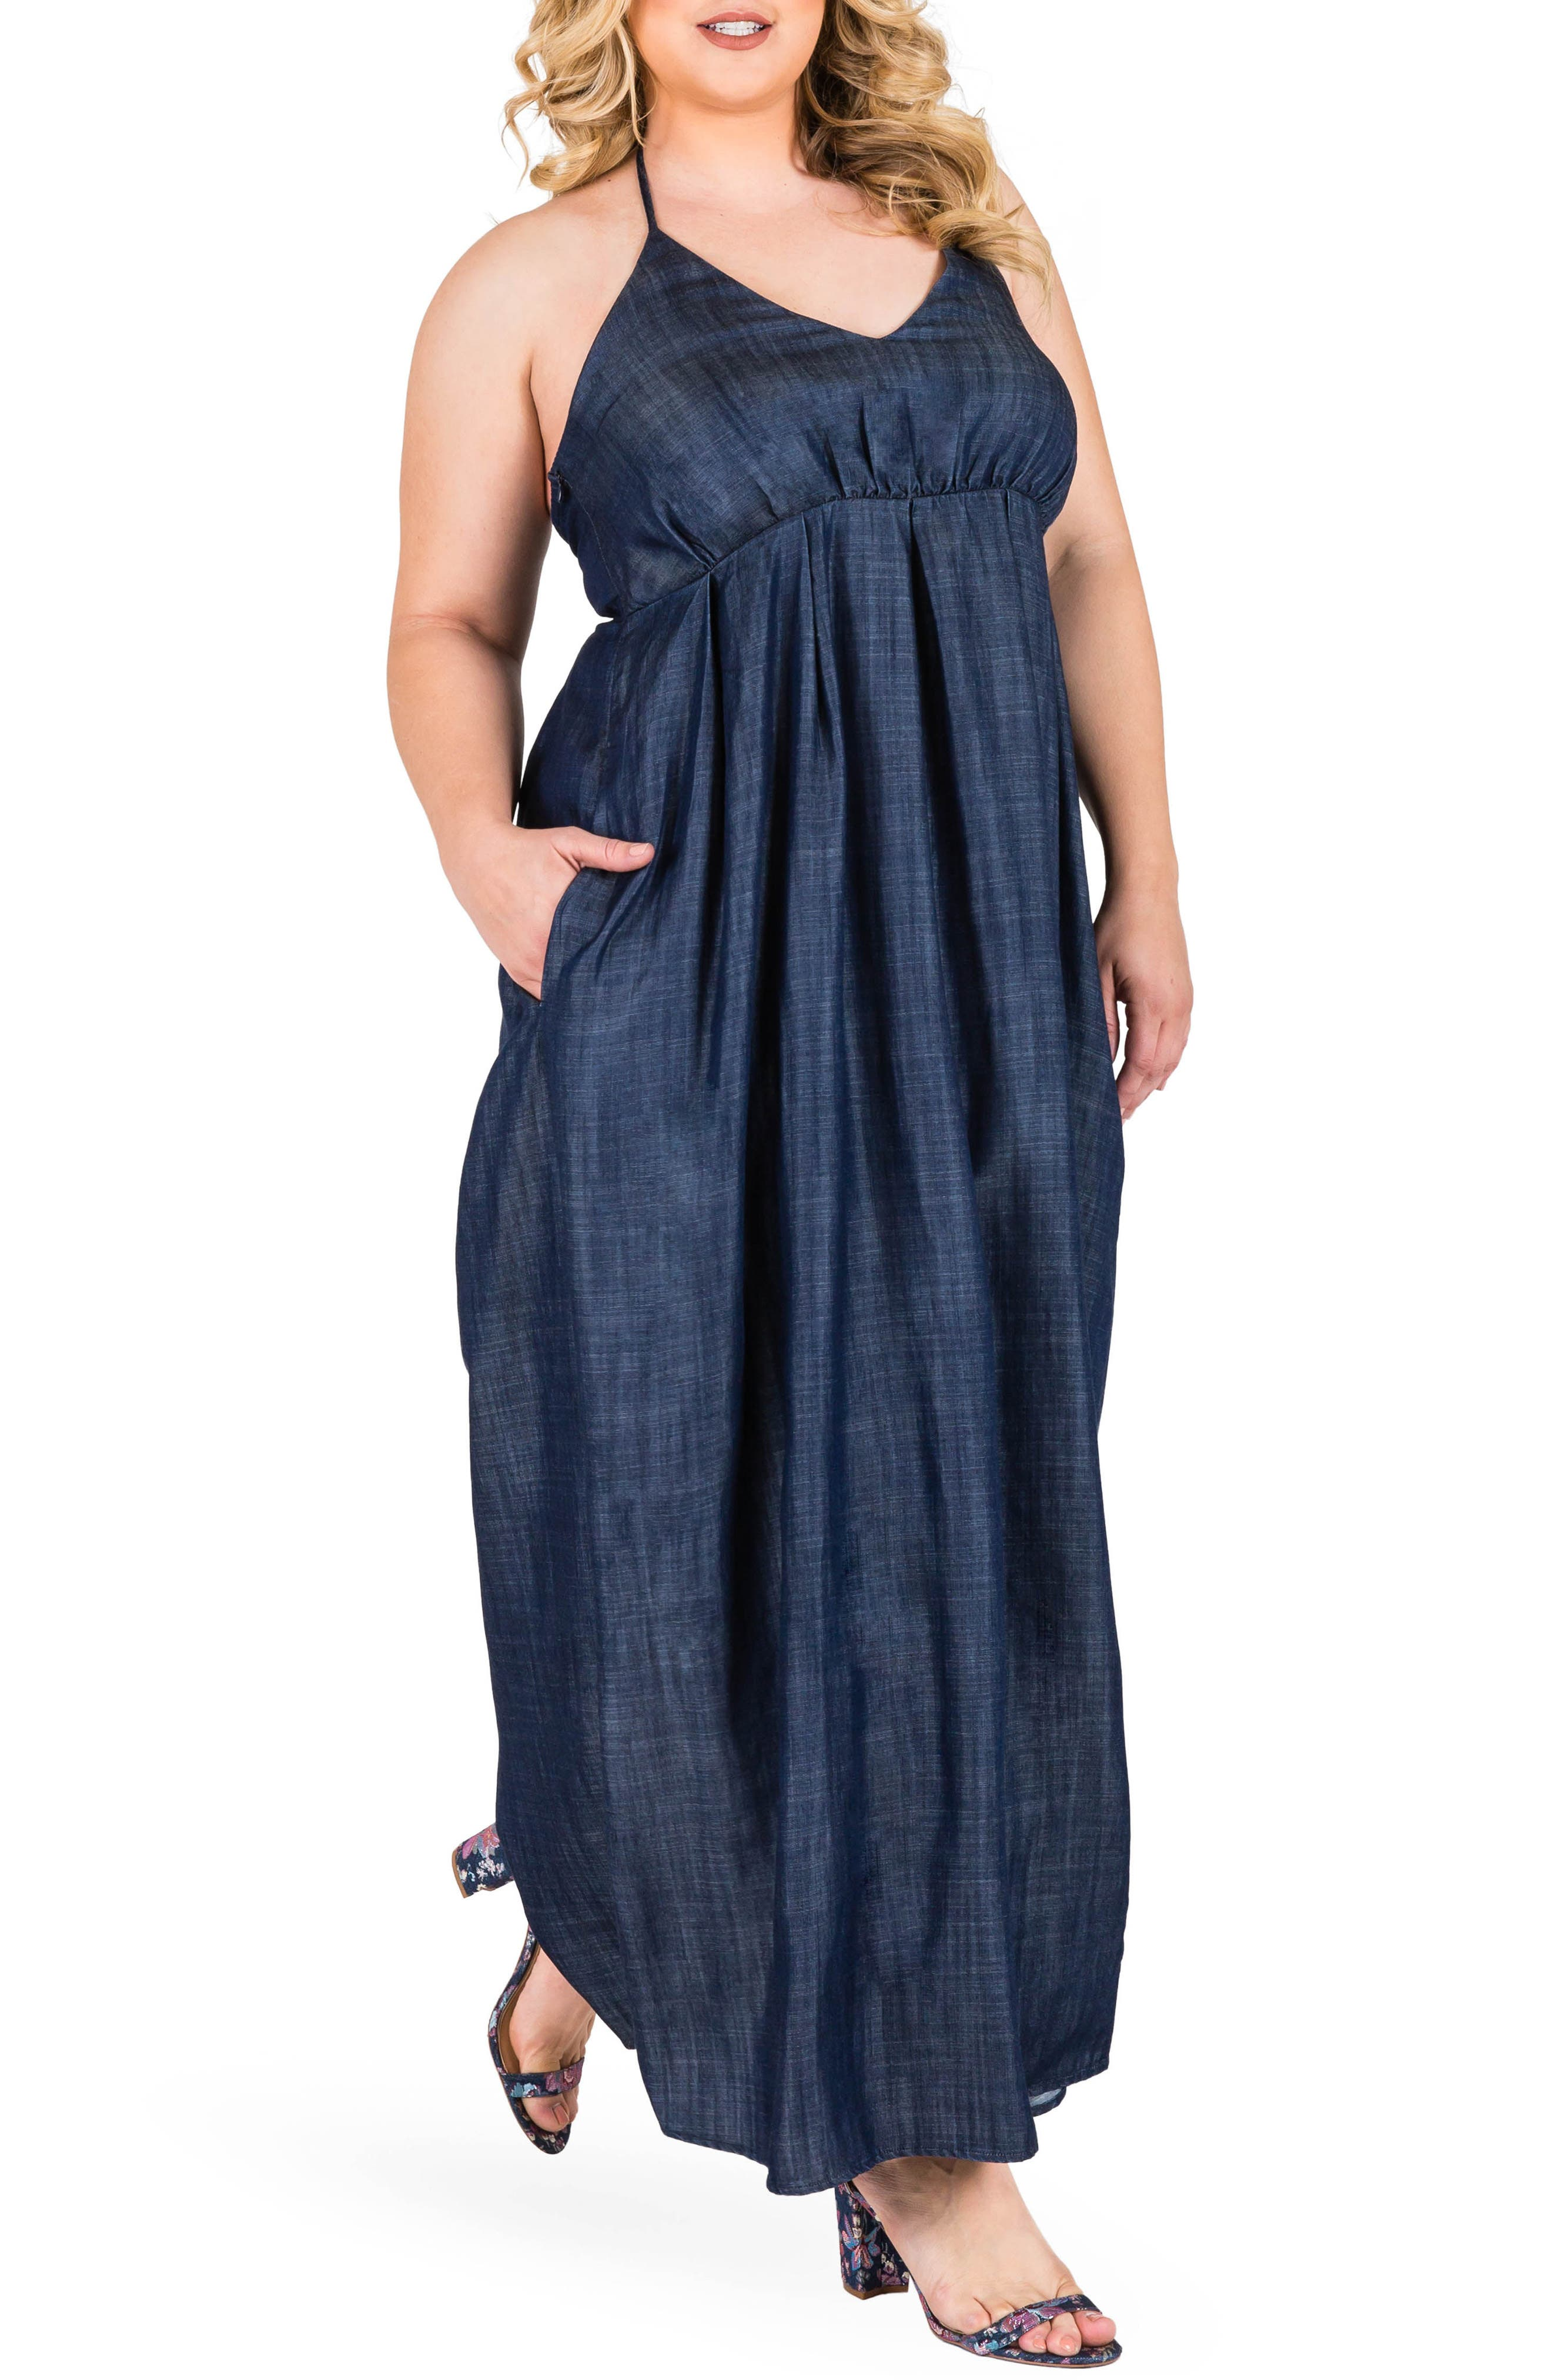 Maui Maxi Chambray Halter Dress,                         Main,                         color, Dark Blue